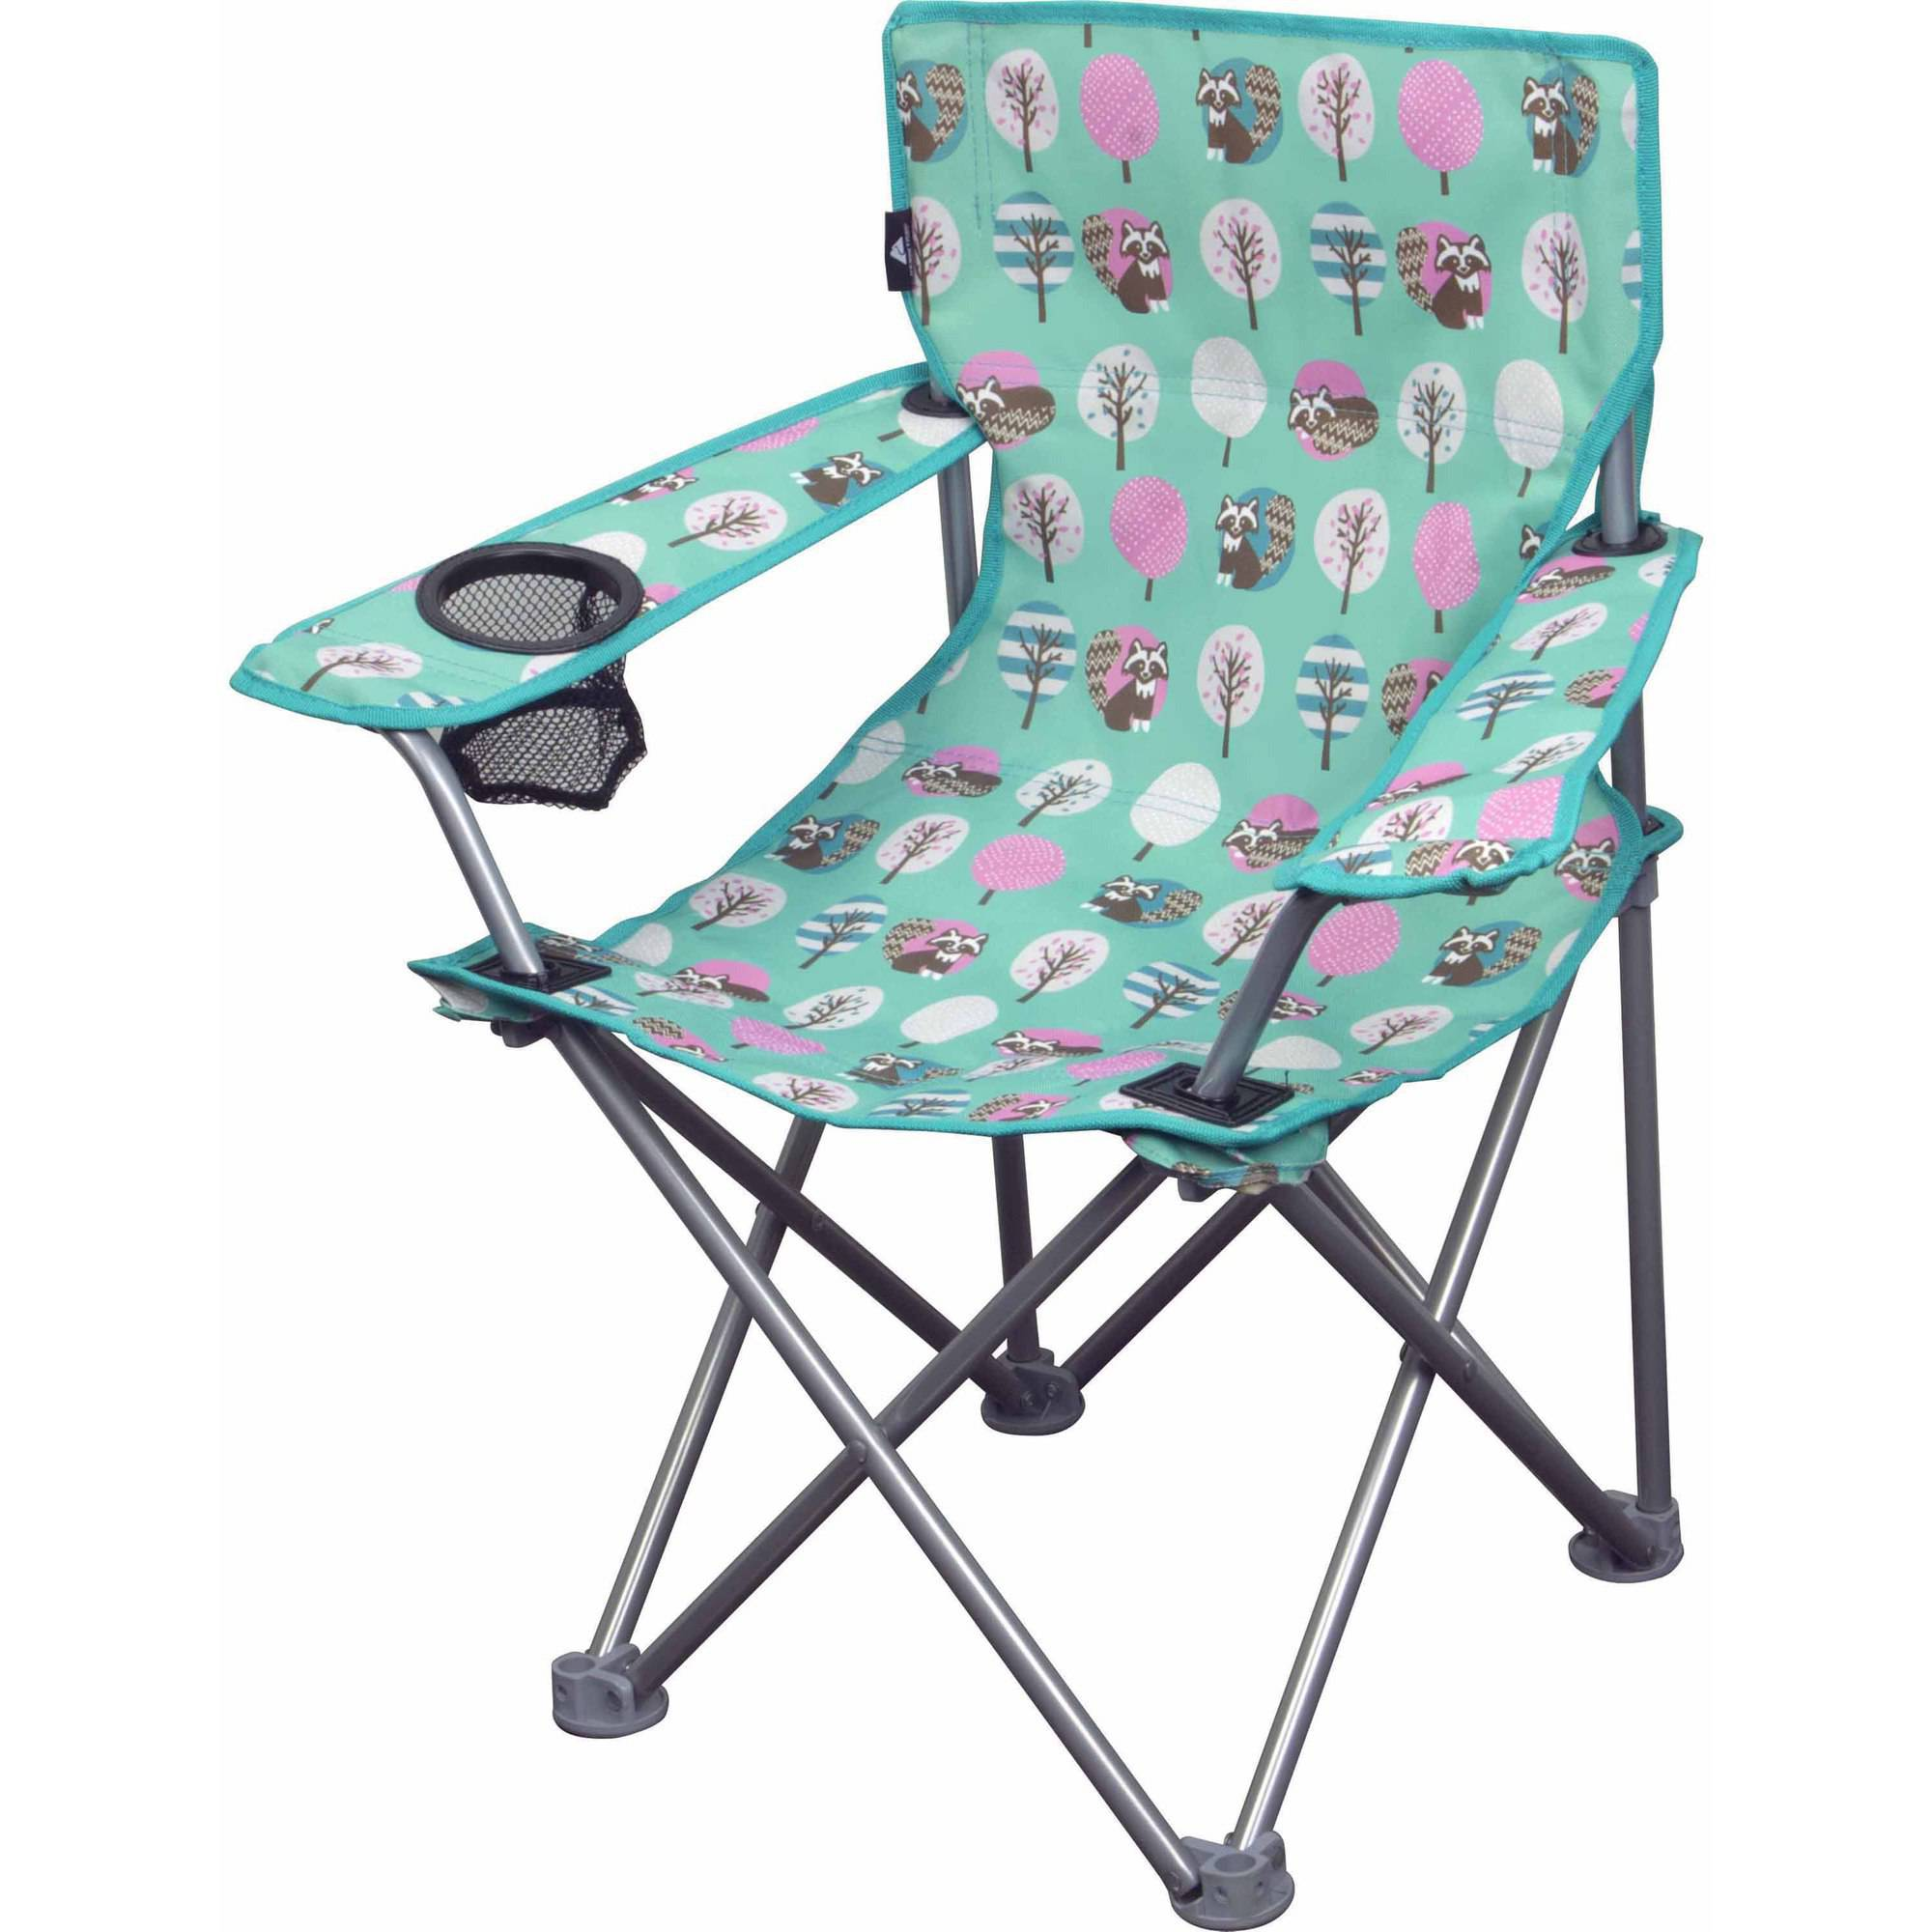 Outdoor wicker furniture for children perfect addition to your